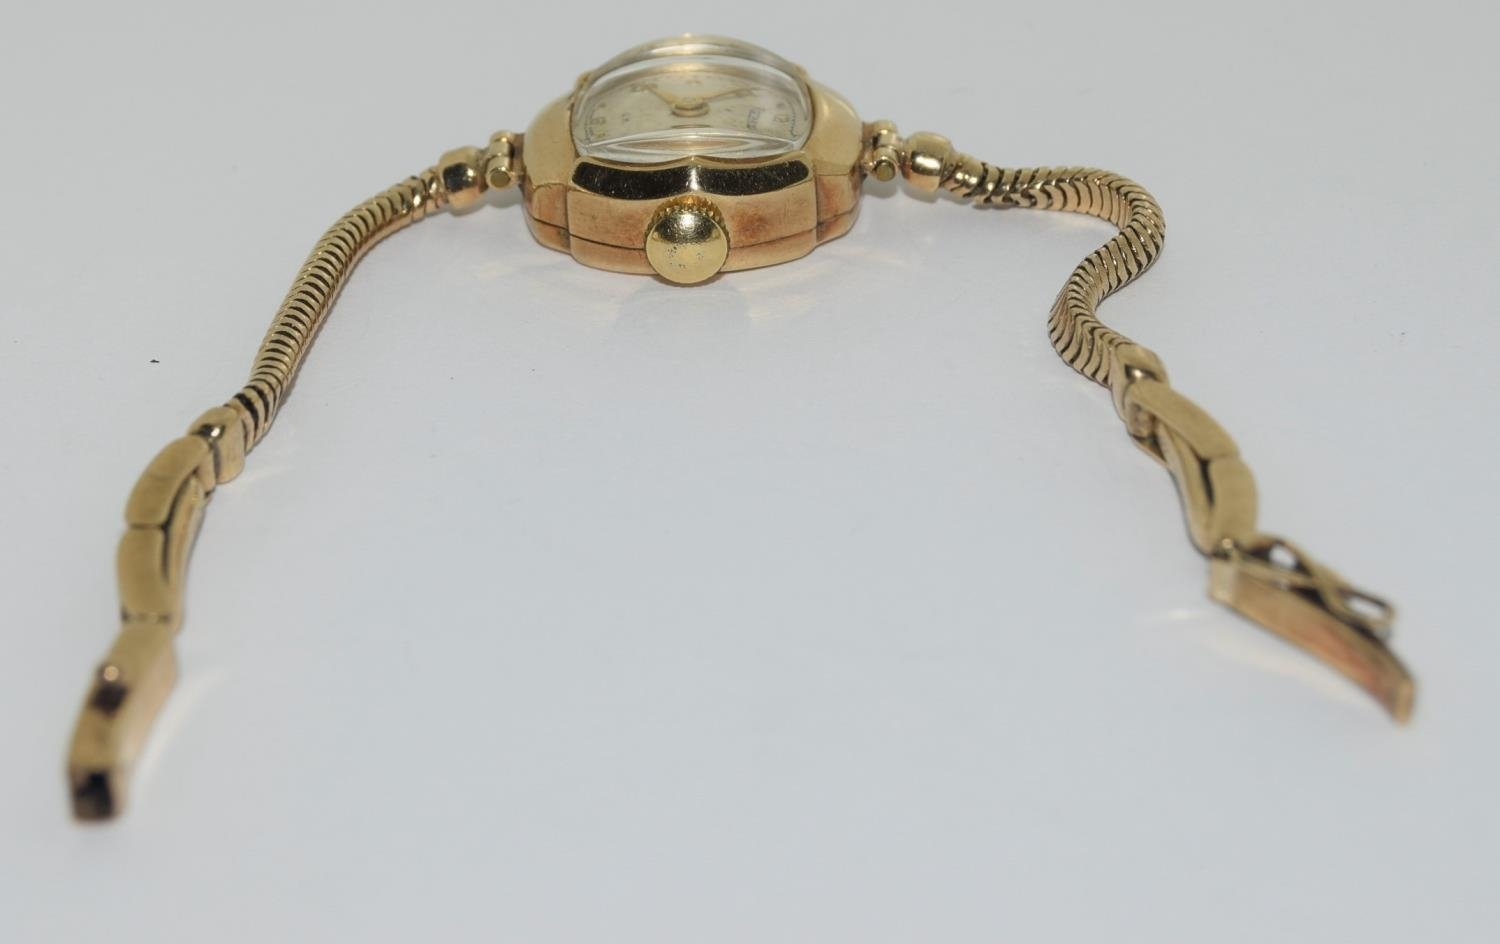 9ct gold ladies watch and strap together an agate watch fob - Image 2 of 9